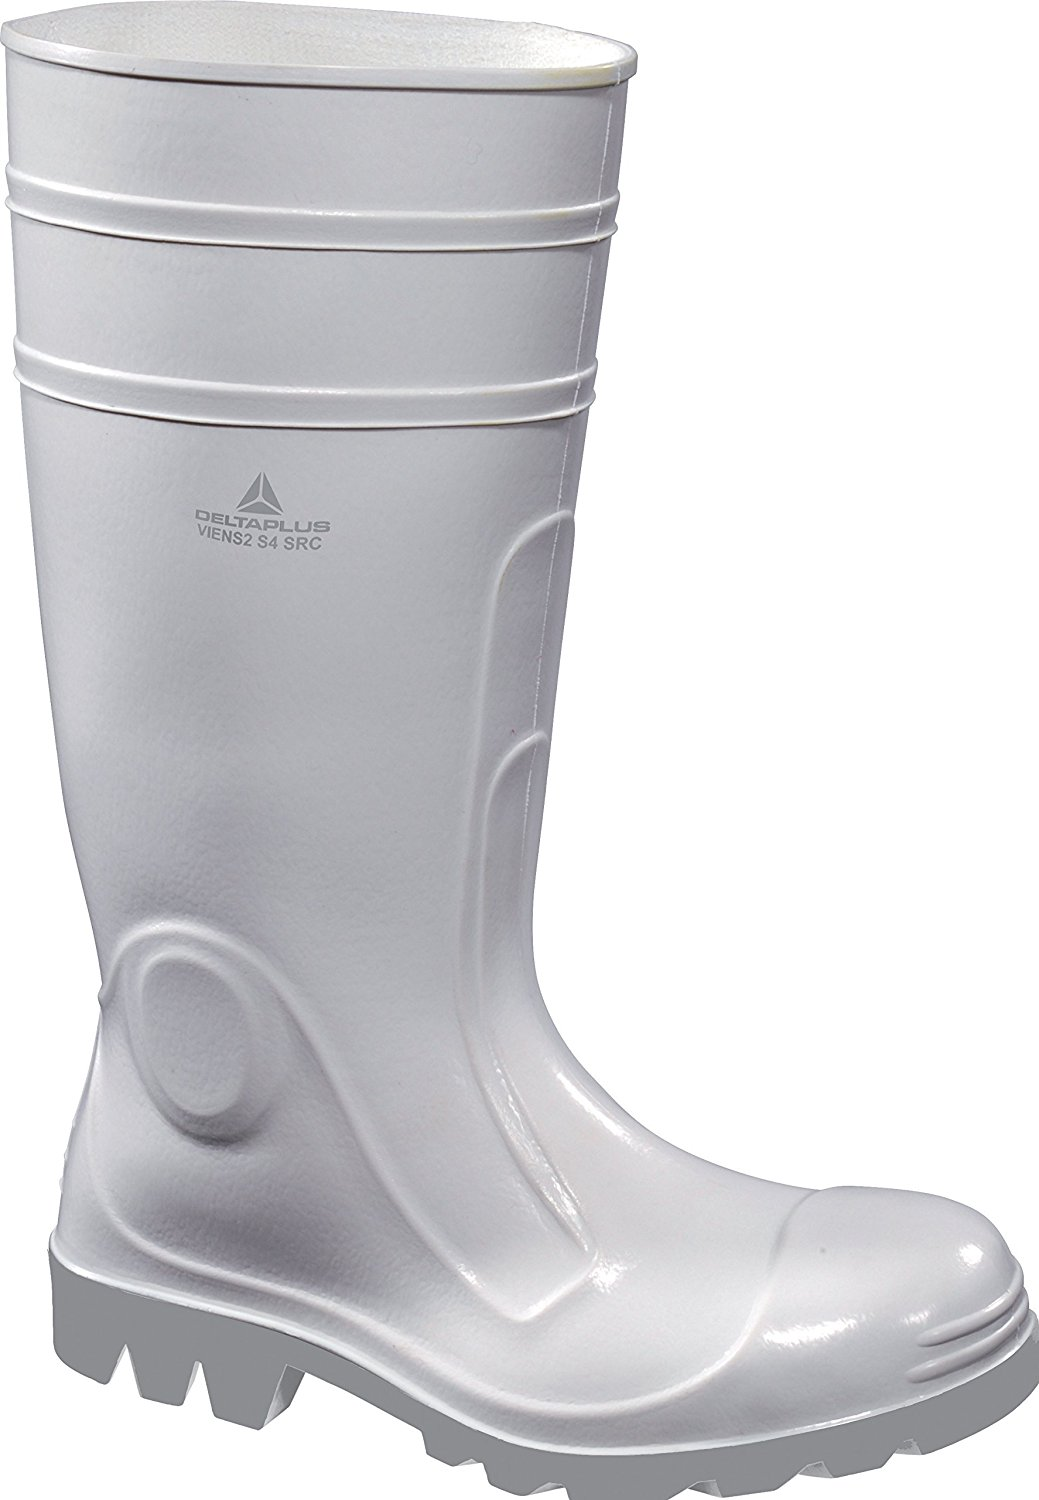 Panoply Mens Delta Plus Viens2 White Pvc Safety Galoshes Wellington Boots Welly Wellies Rubber Boots UK 6.5/EURO 40